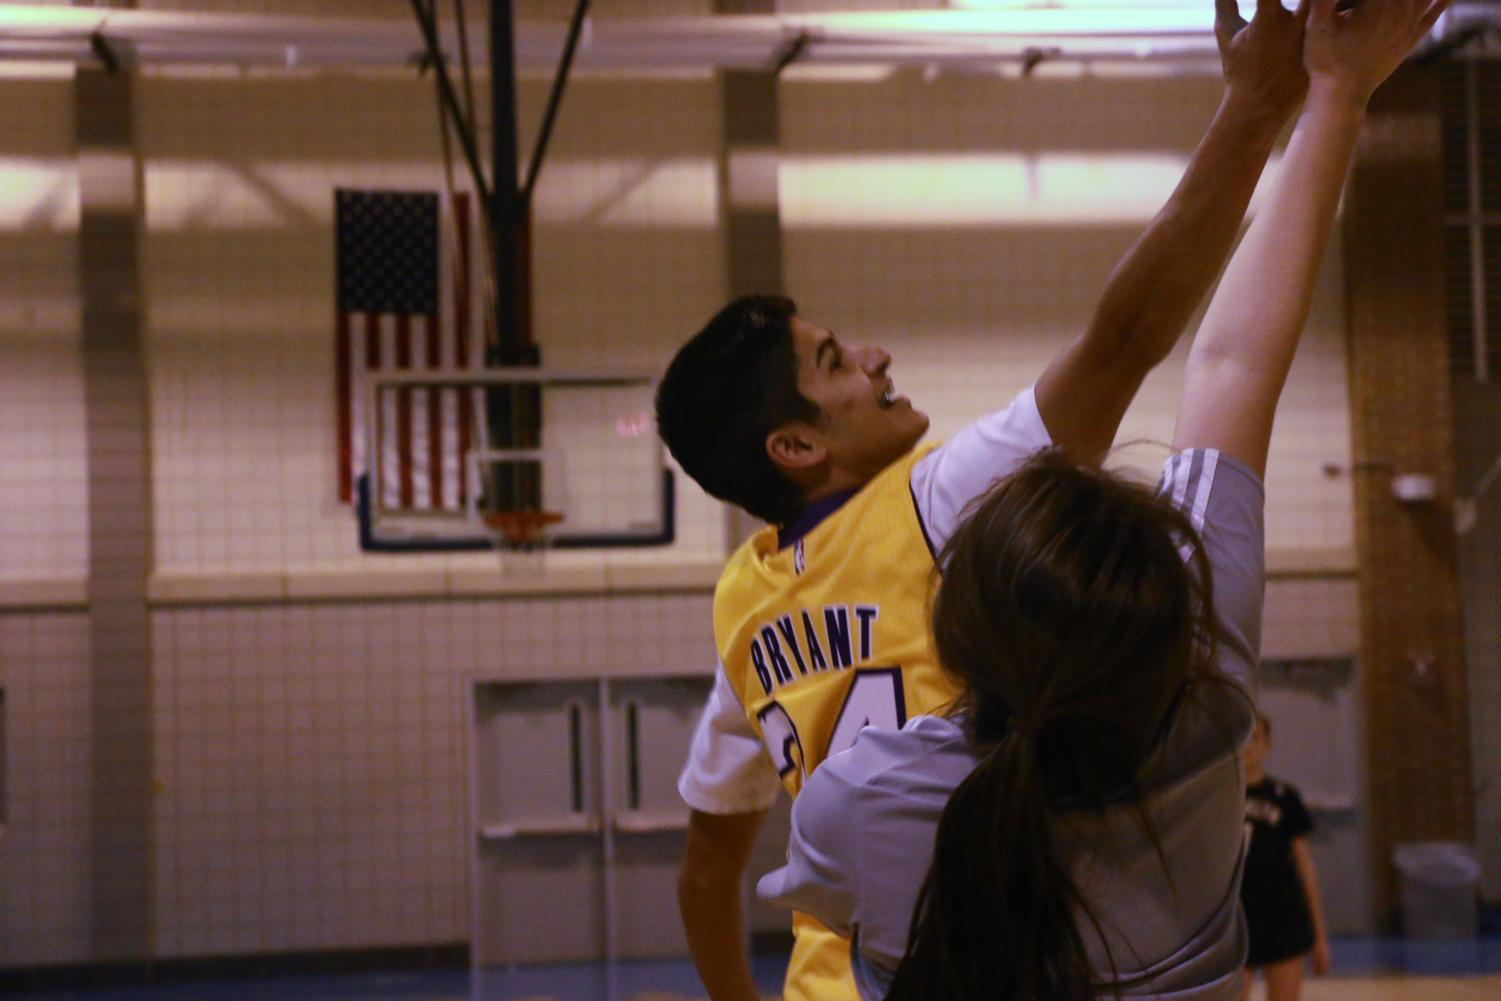 Rohil Senapati, intramural basketball player and sophomore, attempts to rebound a ball during an intramural game.